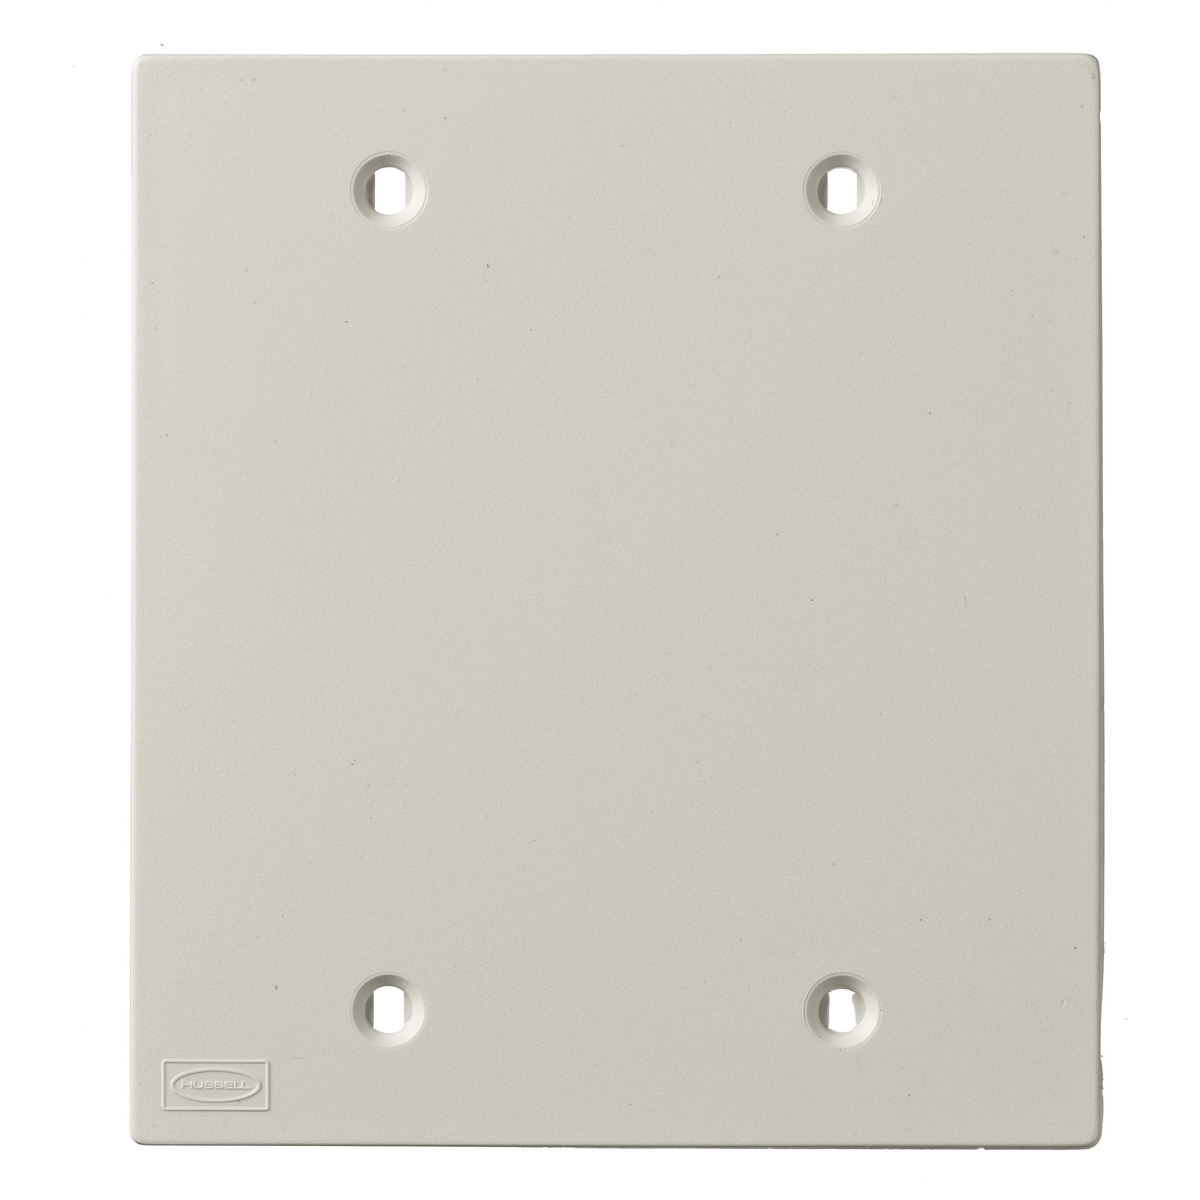 Hubbell KP24 Faceplate